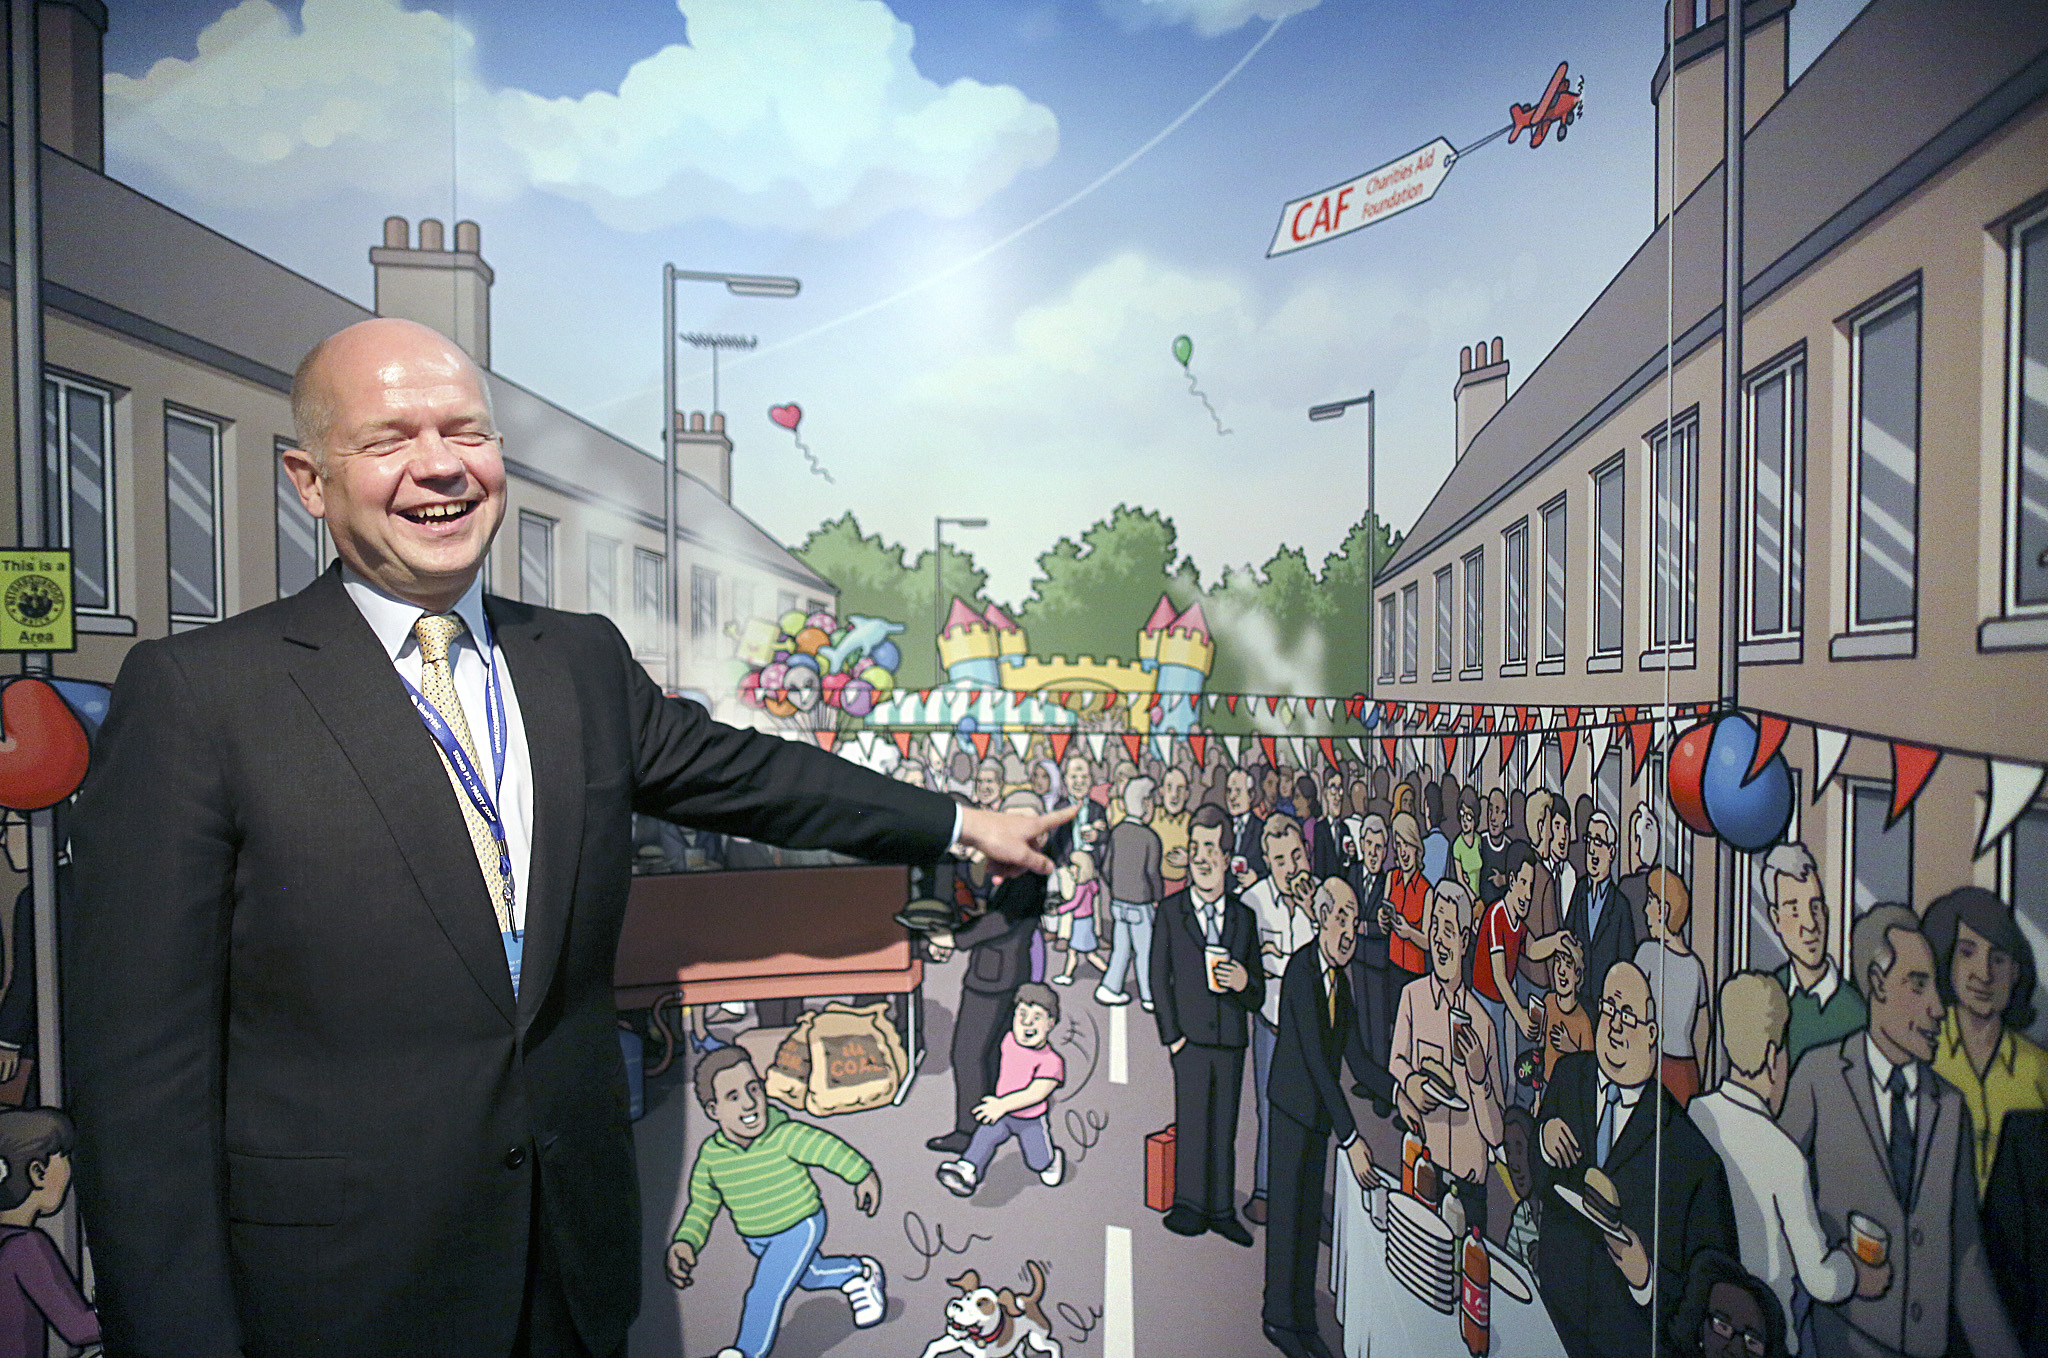 William Hague MP and his wife Ffion take a tour of the stands at the Conservative party conference in Birmingham this morning.